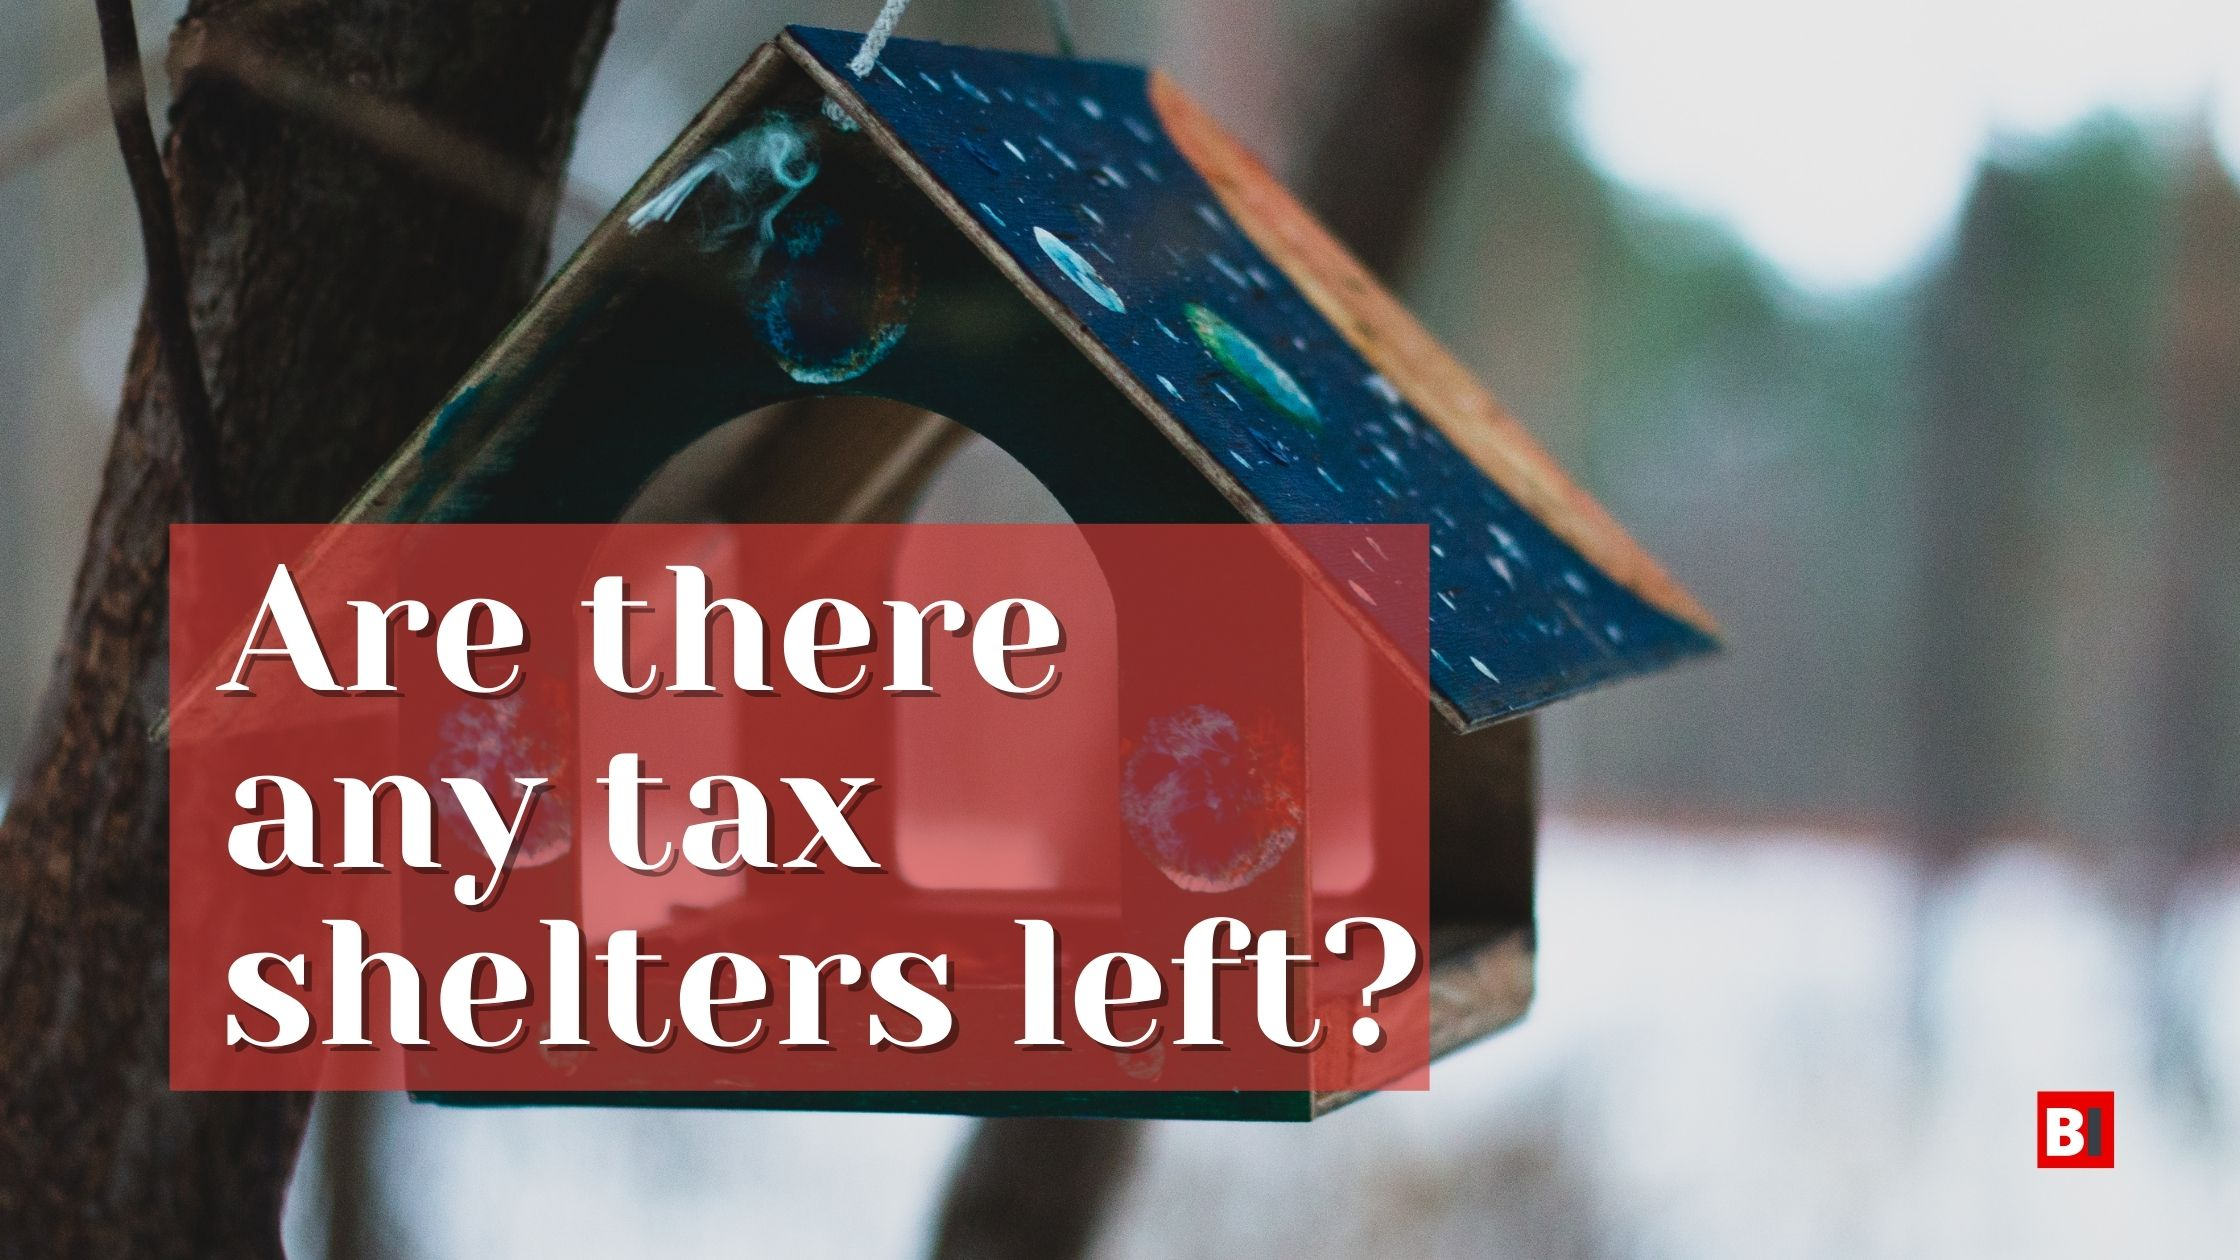 are there any tax shelters left?